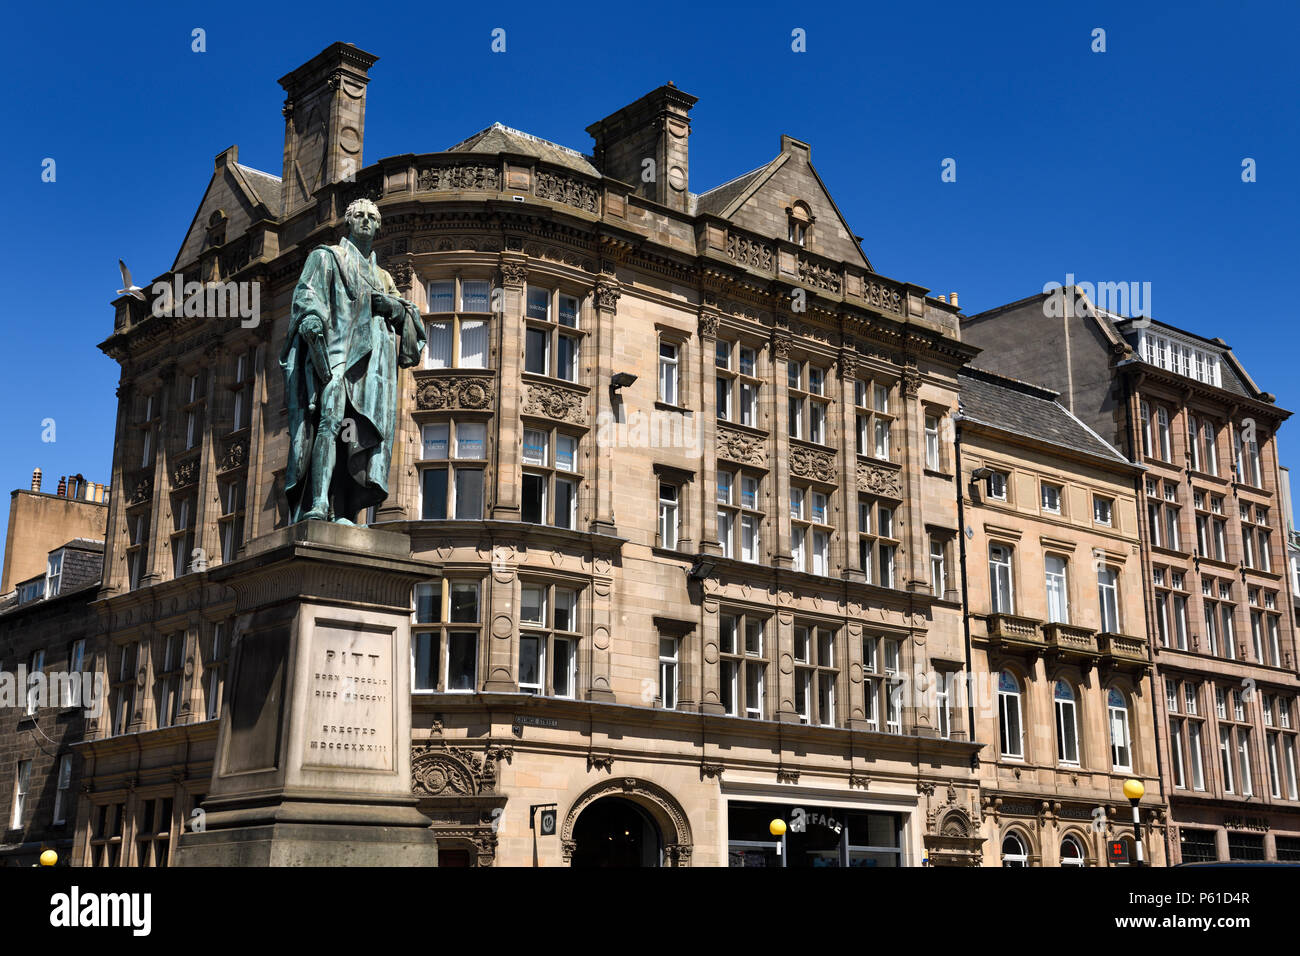 Bronze sculpture of William Pitt the Younger a British Prime Minister on George and Frederick streets Edinburgh Scotland with historic buildings - Stock Image